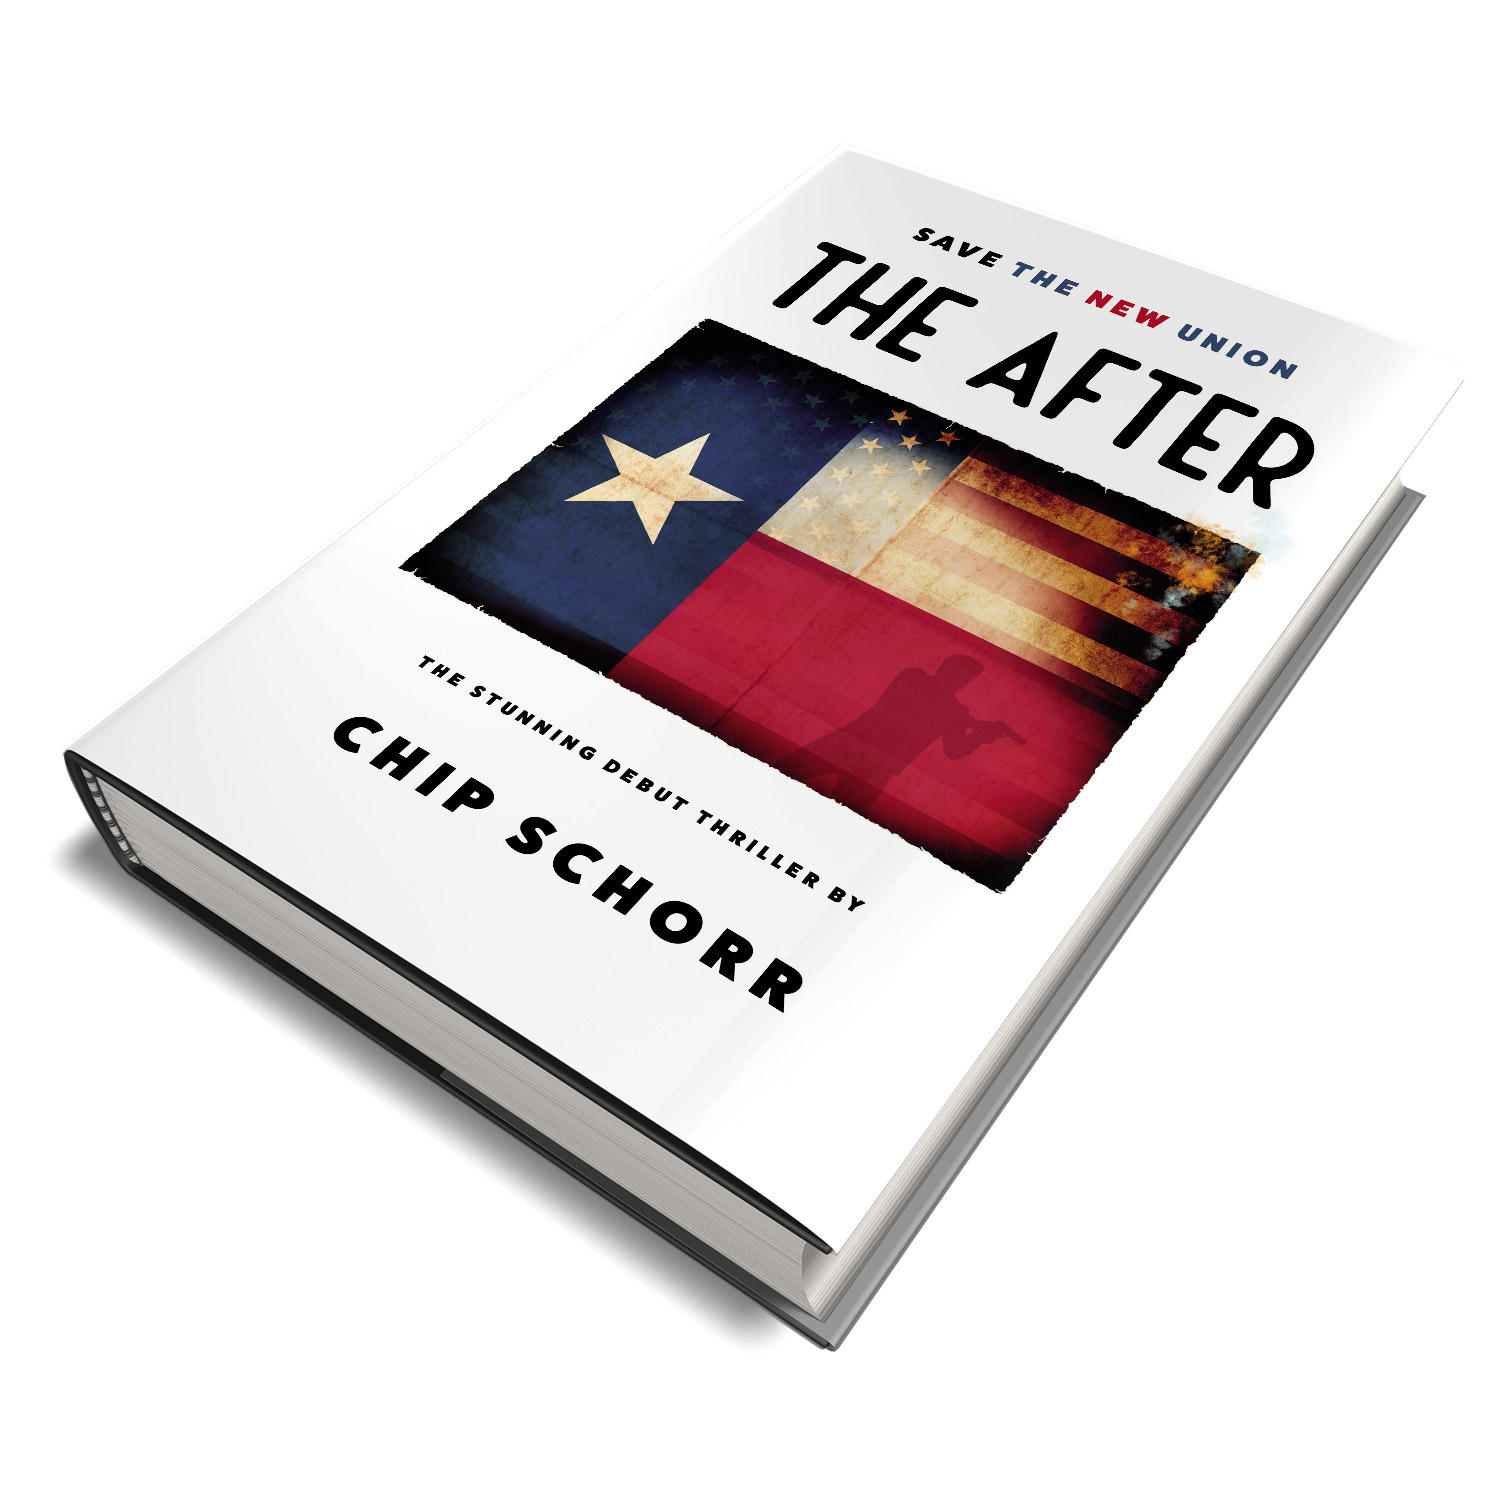 'The After' is a breakneck conspiracy thriller novel by author Chip Schorr. The book cover and interior were designed by Mark Thomas, of coverness.com. To find out more about my book design services, please visit www.coverness.com